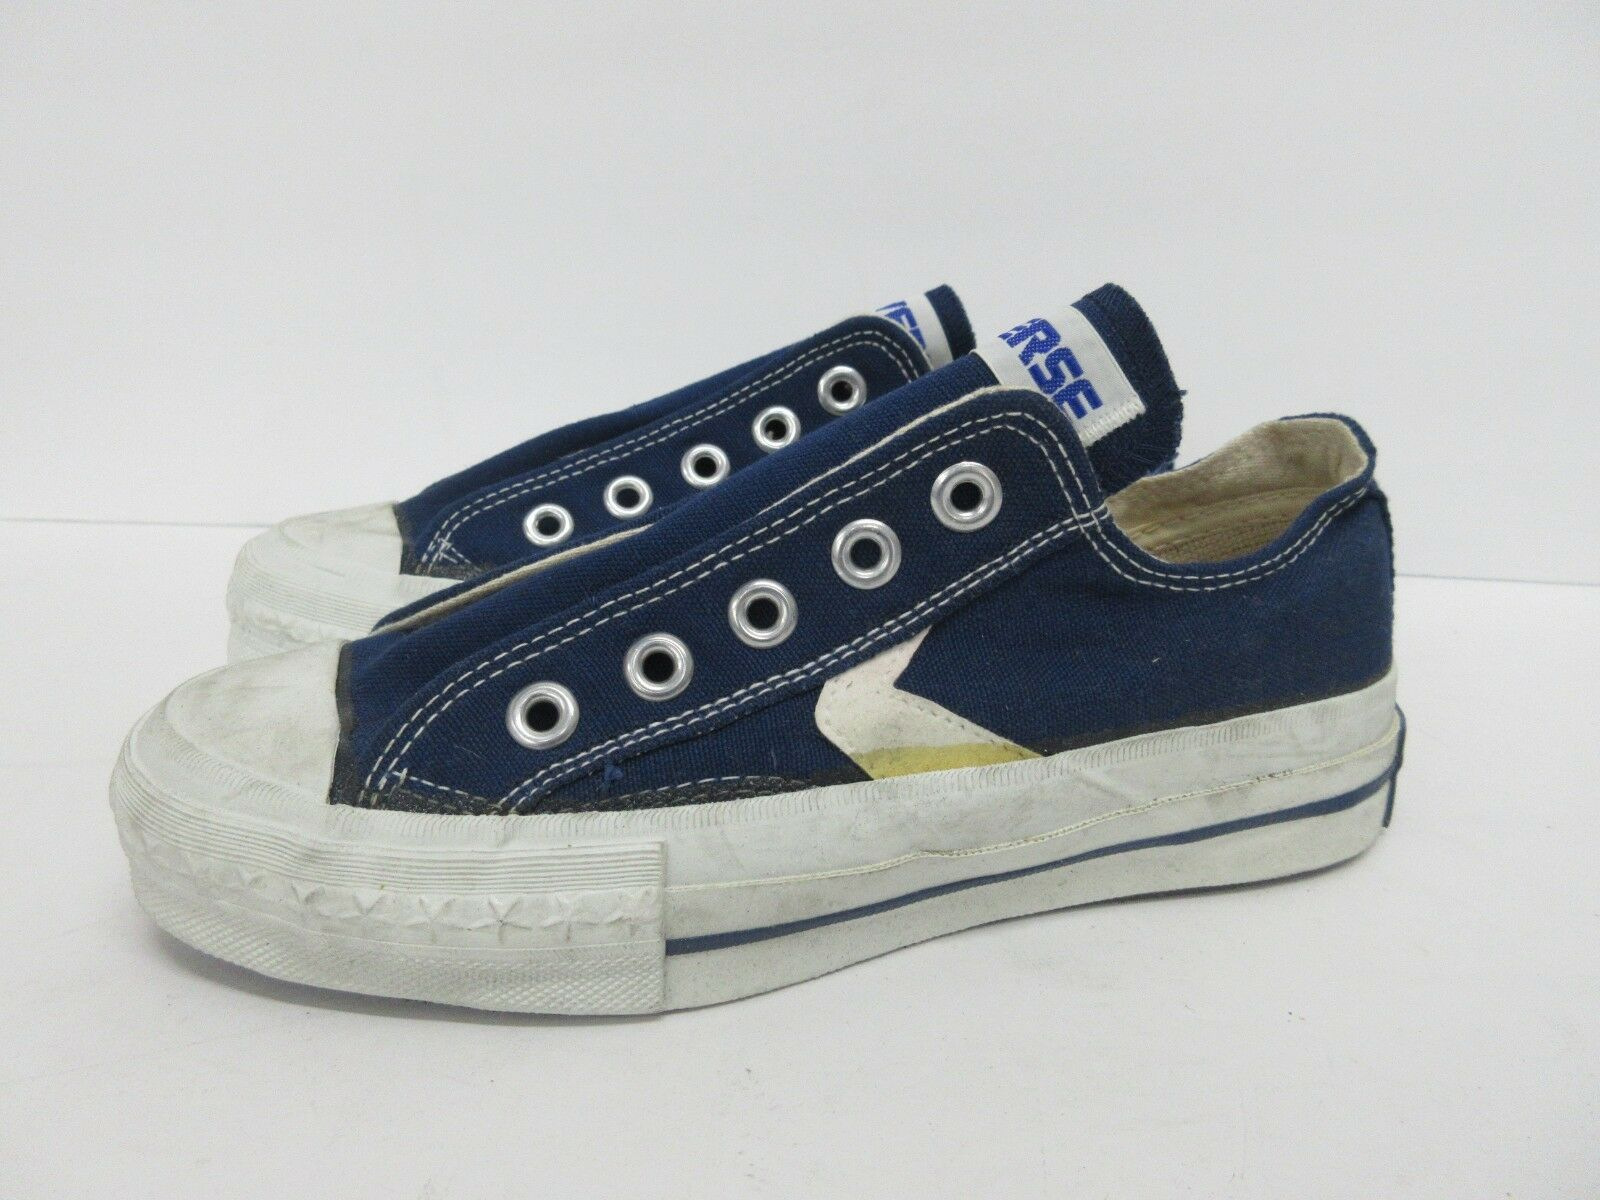 Vintage Retro Converse in Navy Blue 60s/70s 4 Kids' Size: 2.5, Women's 4 60s/70s RARE 06e978